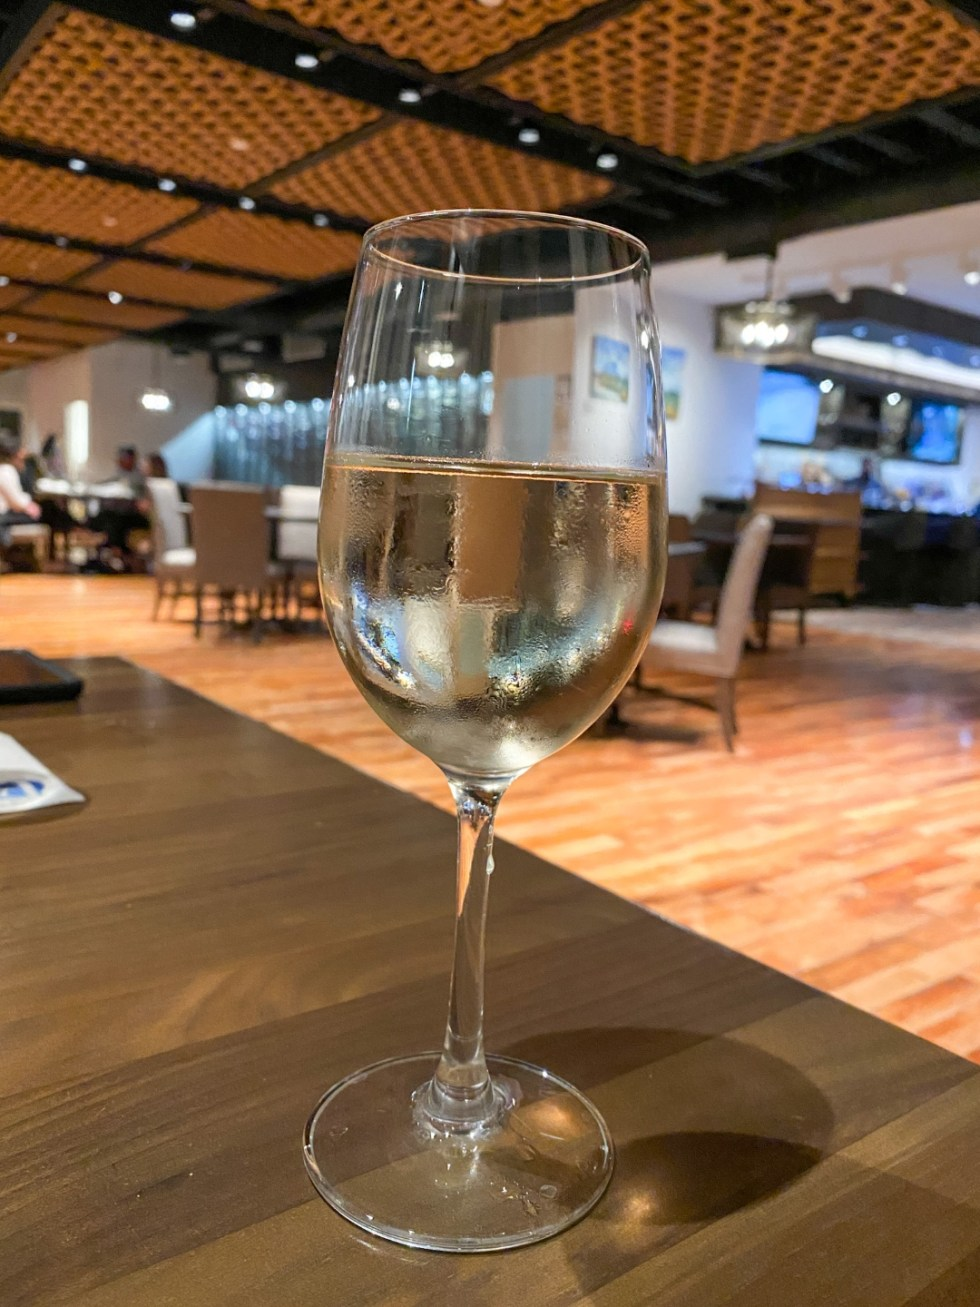 Weekend Travel: The Best Things to Do in Beaufort NC in 48 Hours - I'm Fixin' To - @imfixintoblog |Things to Do in Beaufort NC by popular NC travel blog, I'm Fixin' To: image of a glass of white wine.